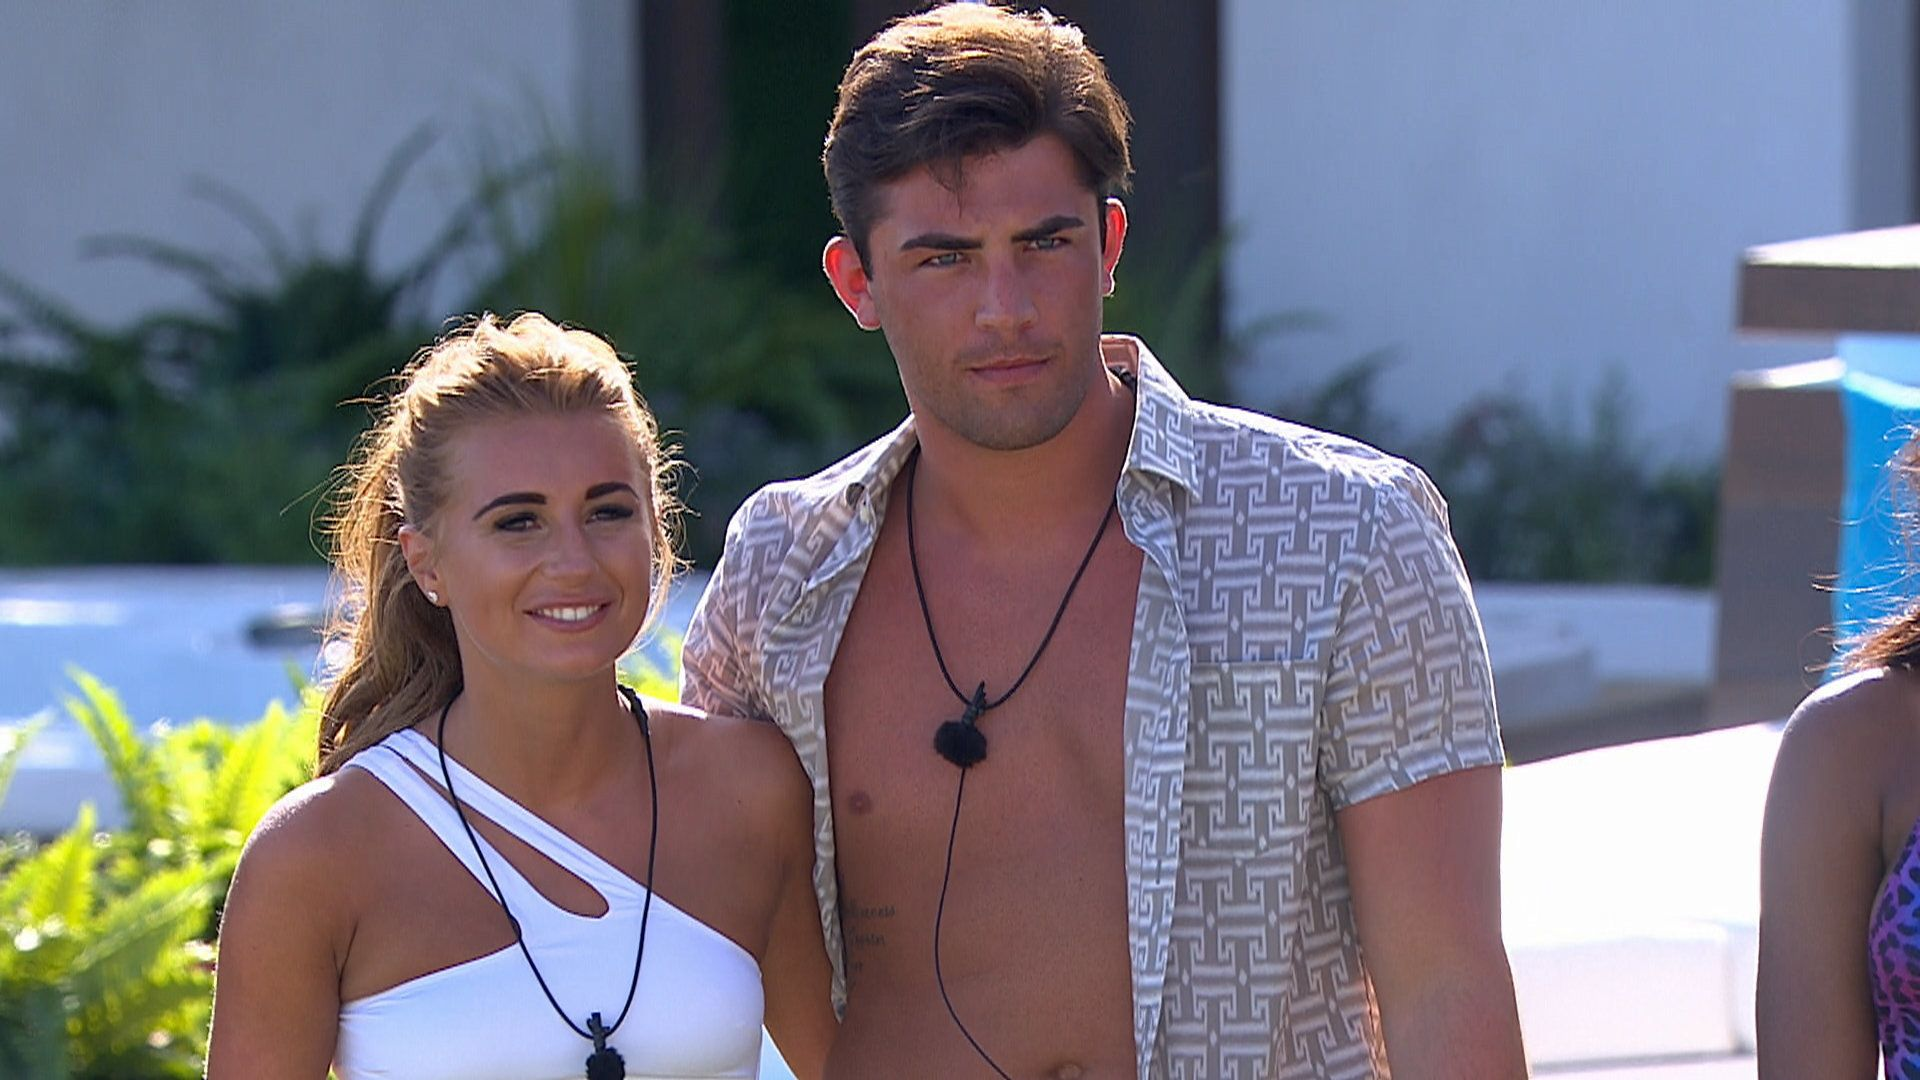 'Love Island' Fans Beg Bosses Not To Turn Show Into 'Ex On The Beach' With Arrival Of Jack's